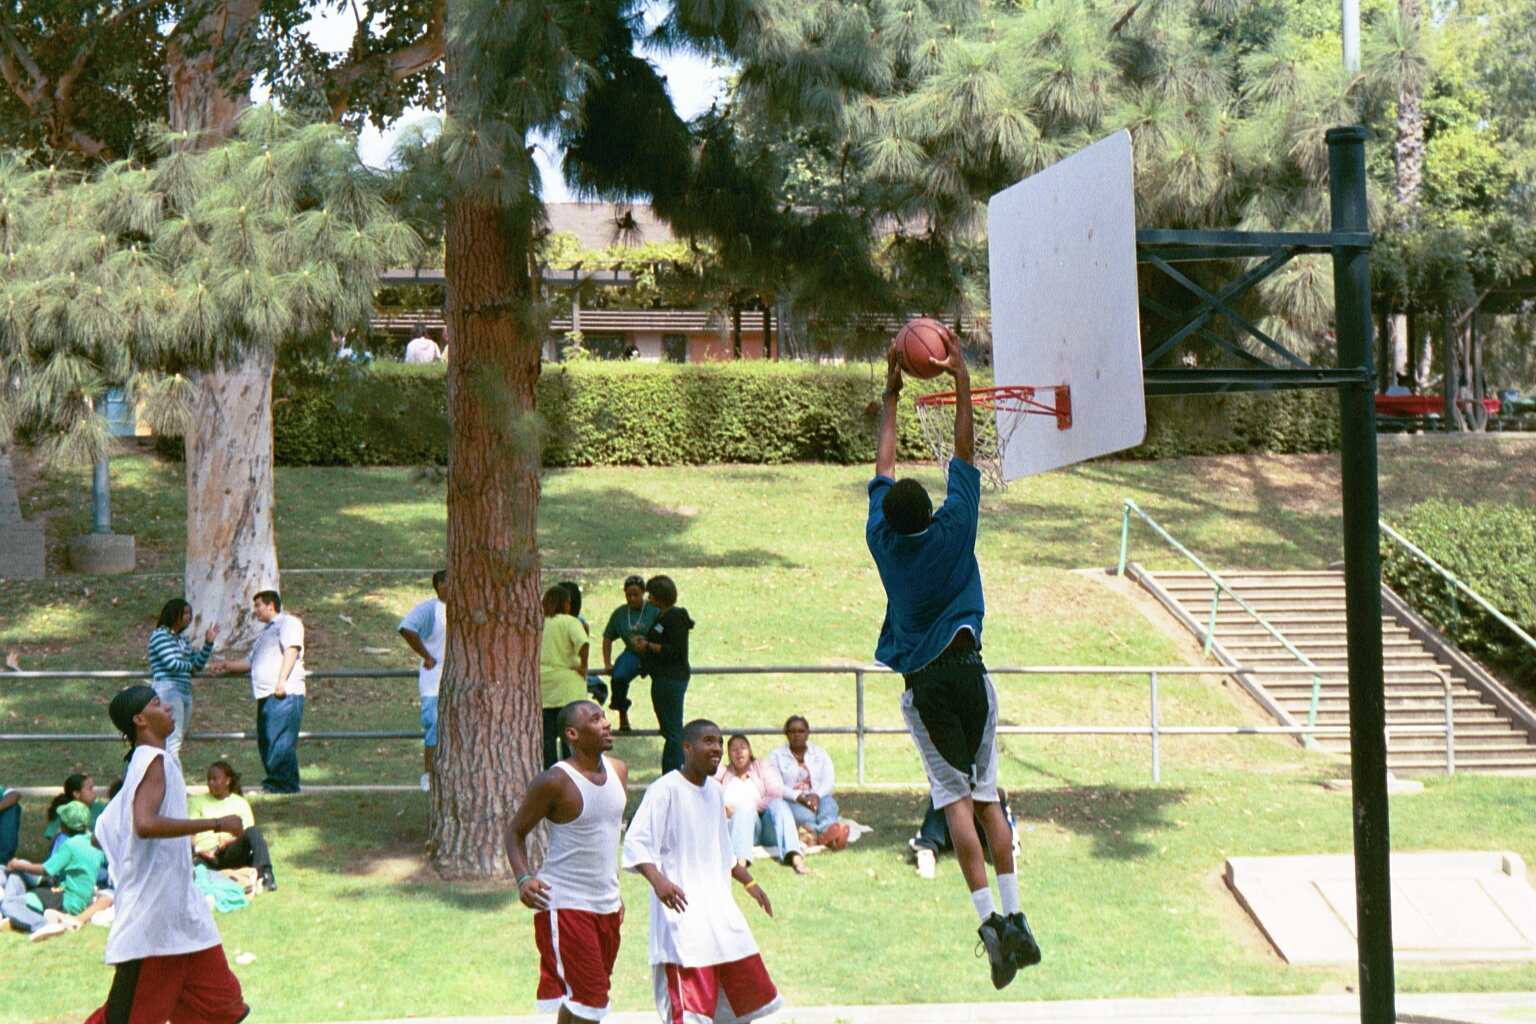 basketballpark.jpg